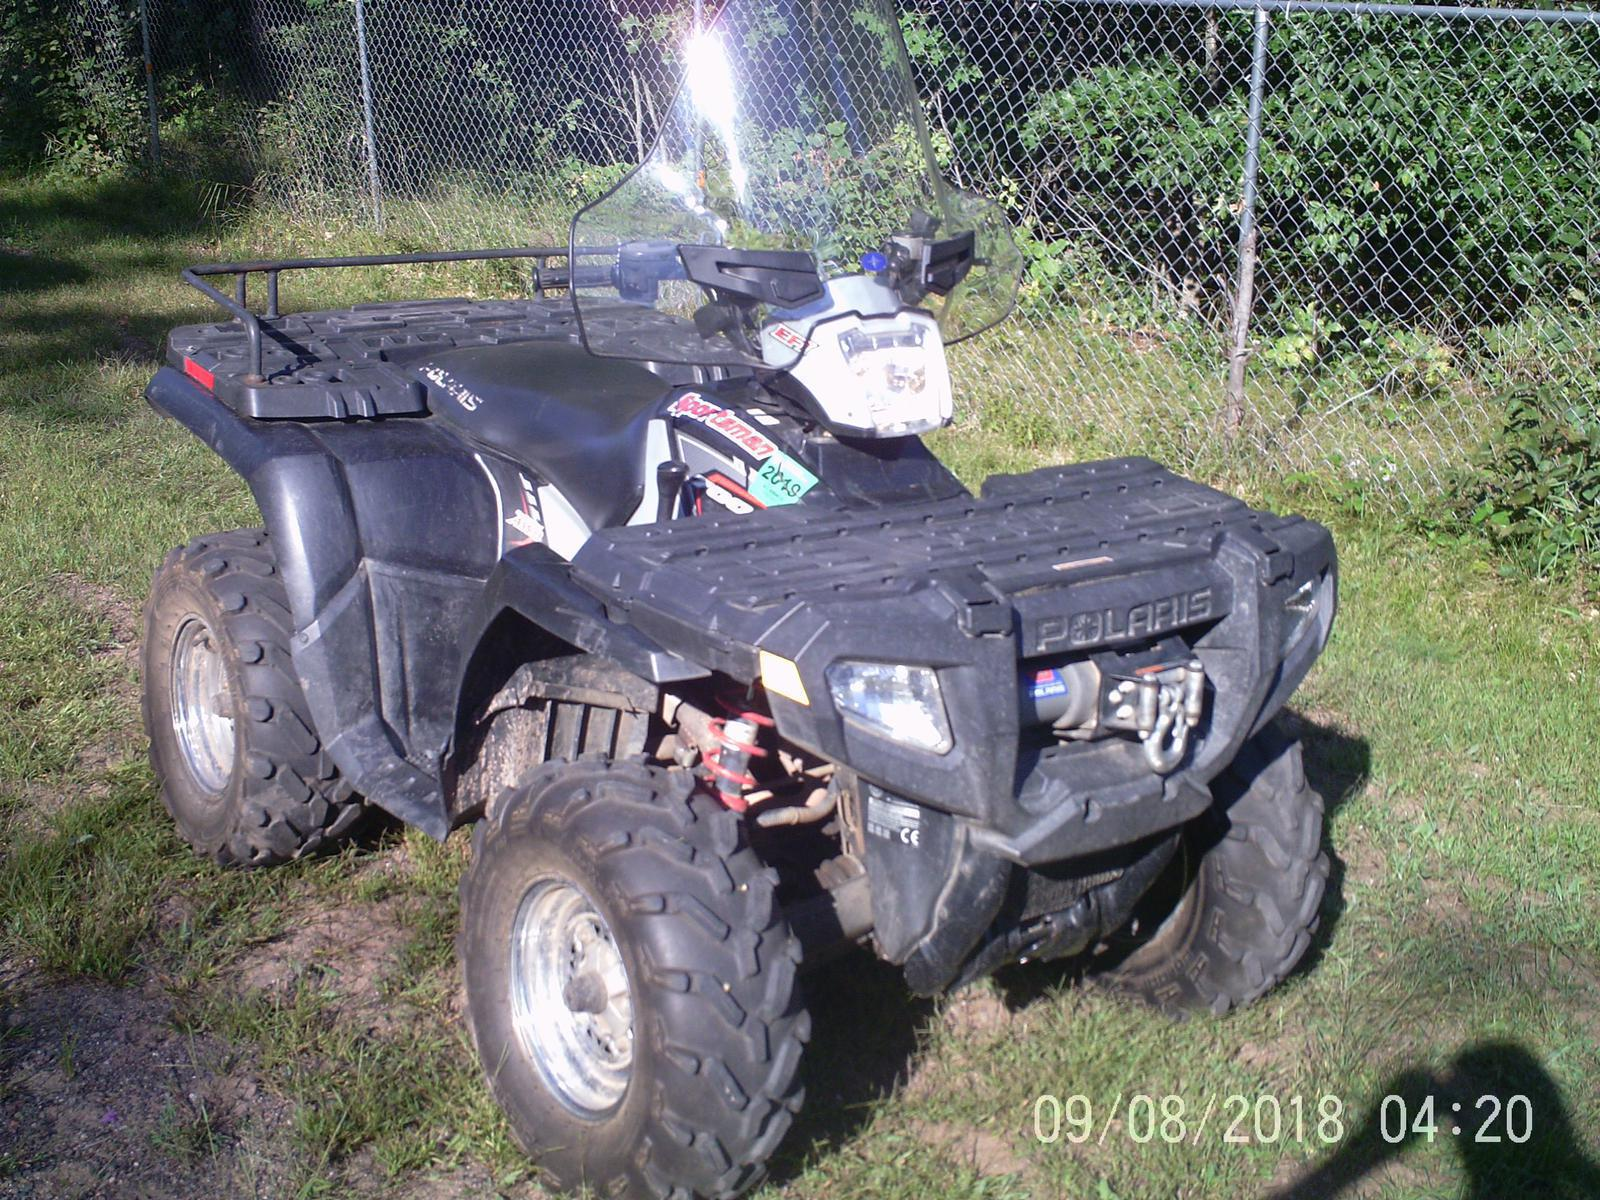 Used ATV'S from Polaris FOUR STAR SPORTS WEBB LAKE, WI (715